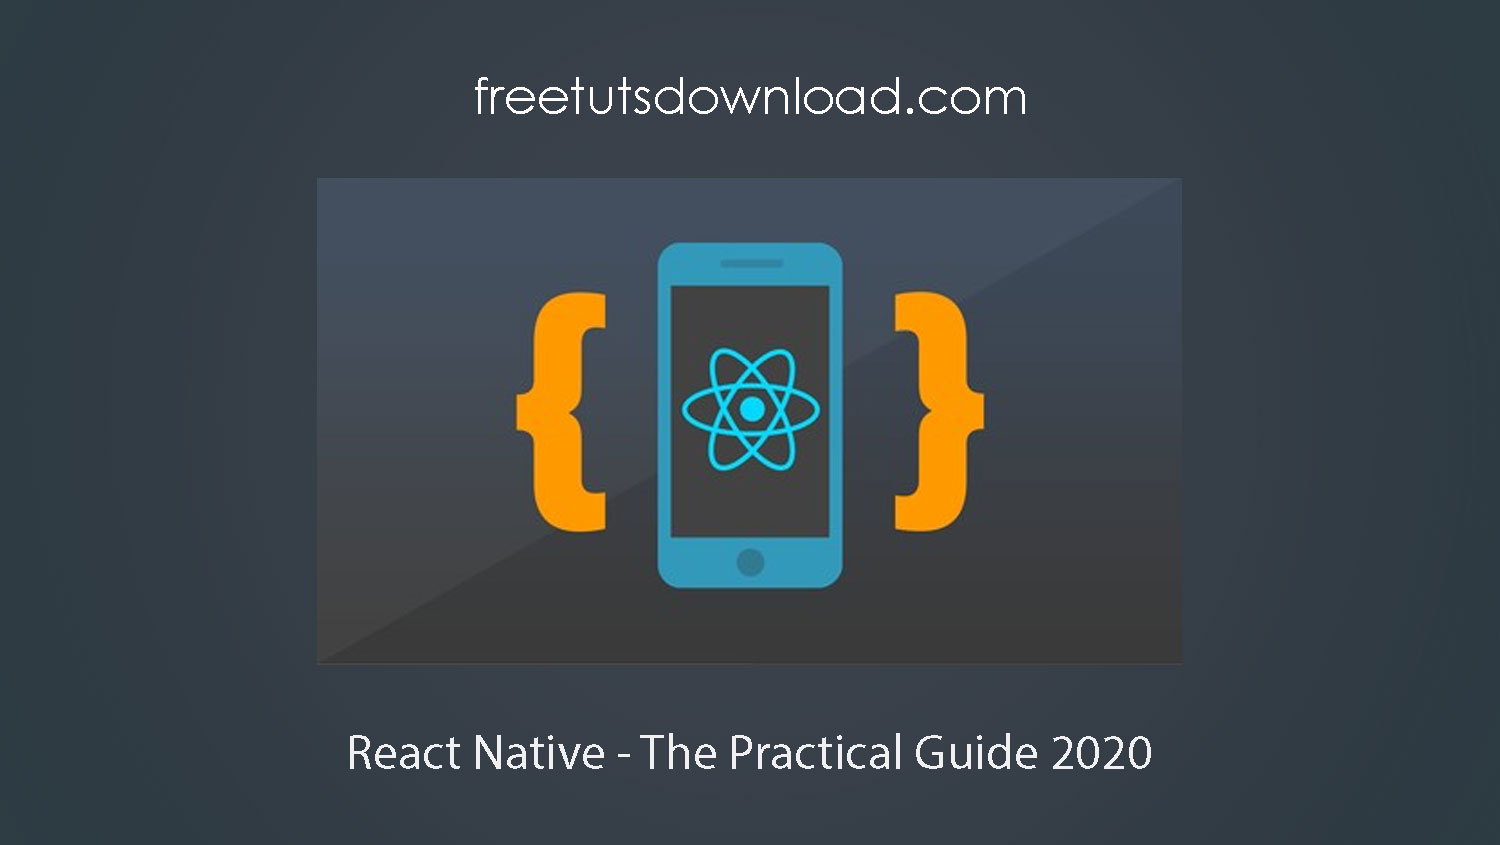 React Native - The Practical Guide 2020